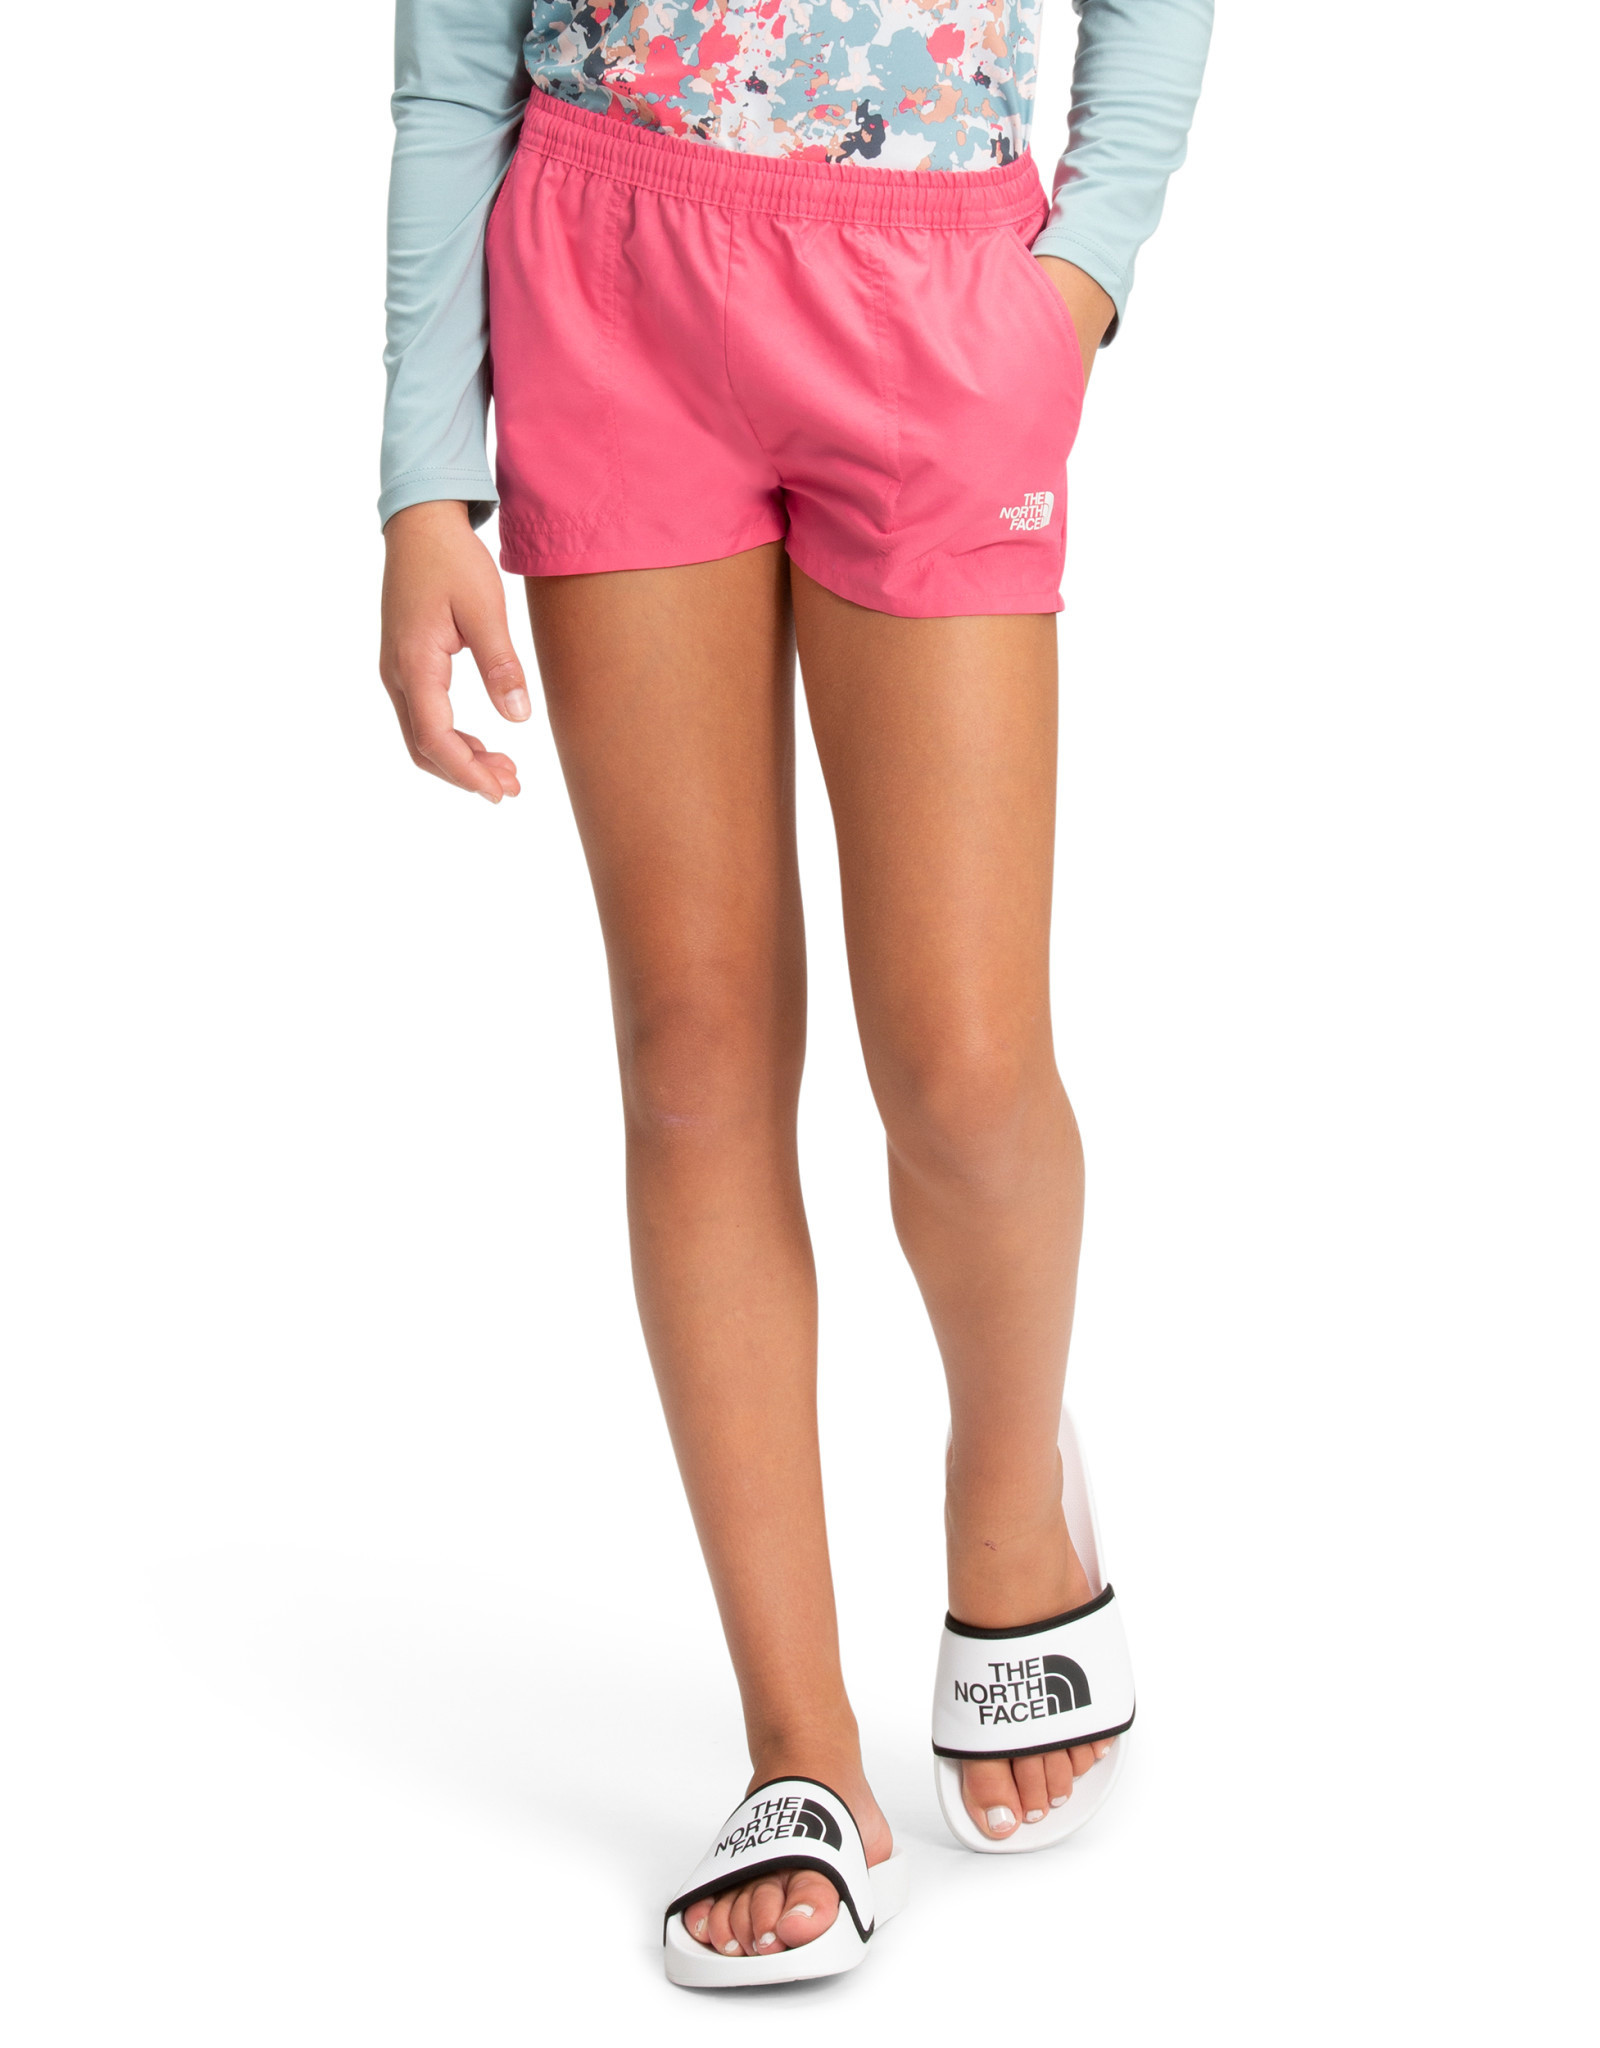 The North Face The North Face Girl's Class V Water Short -S2021